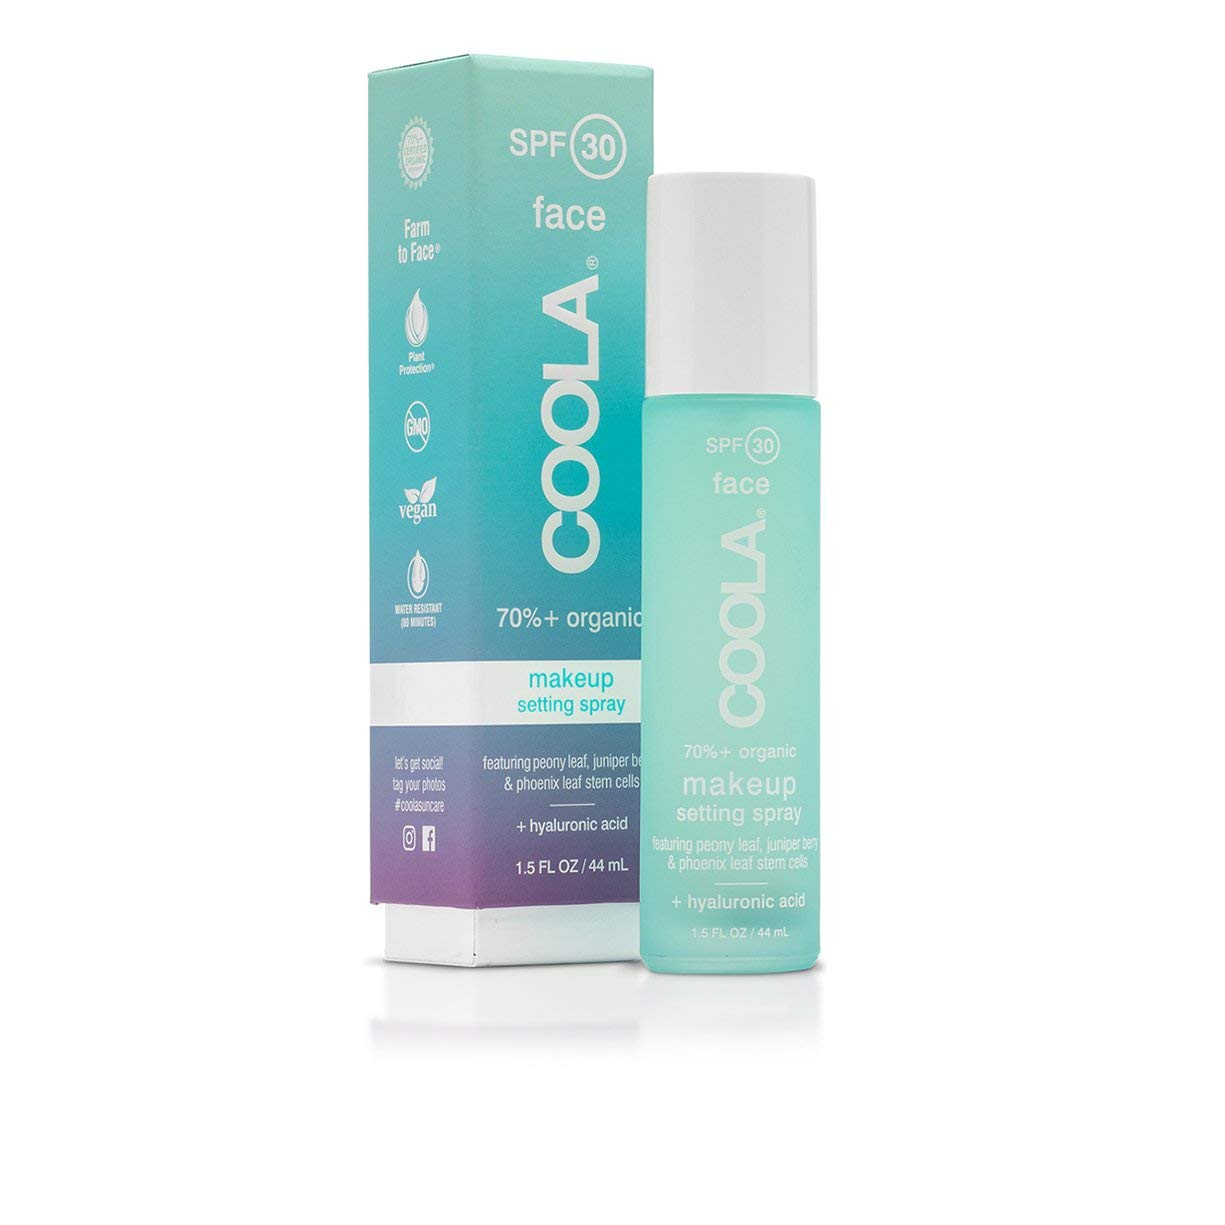 COOLA Organic Makeup Setting Sunscreen Spray | Weightless, Matte Finish | Broad Spectrum SPF 30 | Vegan, Non-GMO, Farm to Face | Natural Green Tea + Aloe Scent | Hyaluronic Acid | 1.5 ounces by Coola Suncare